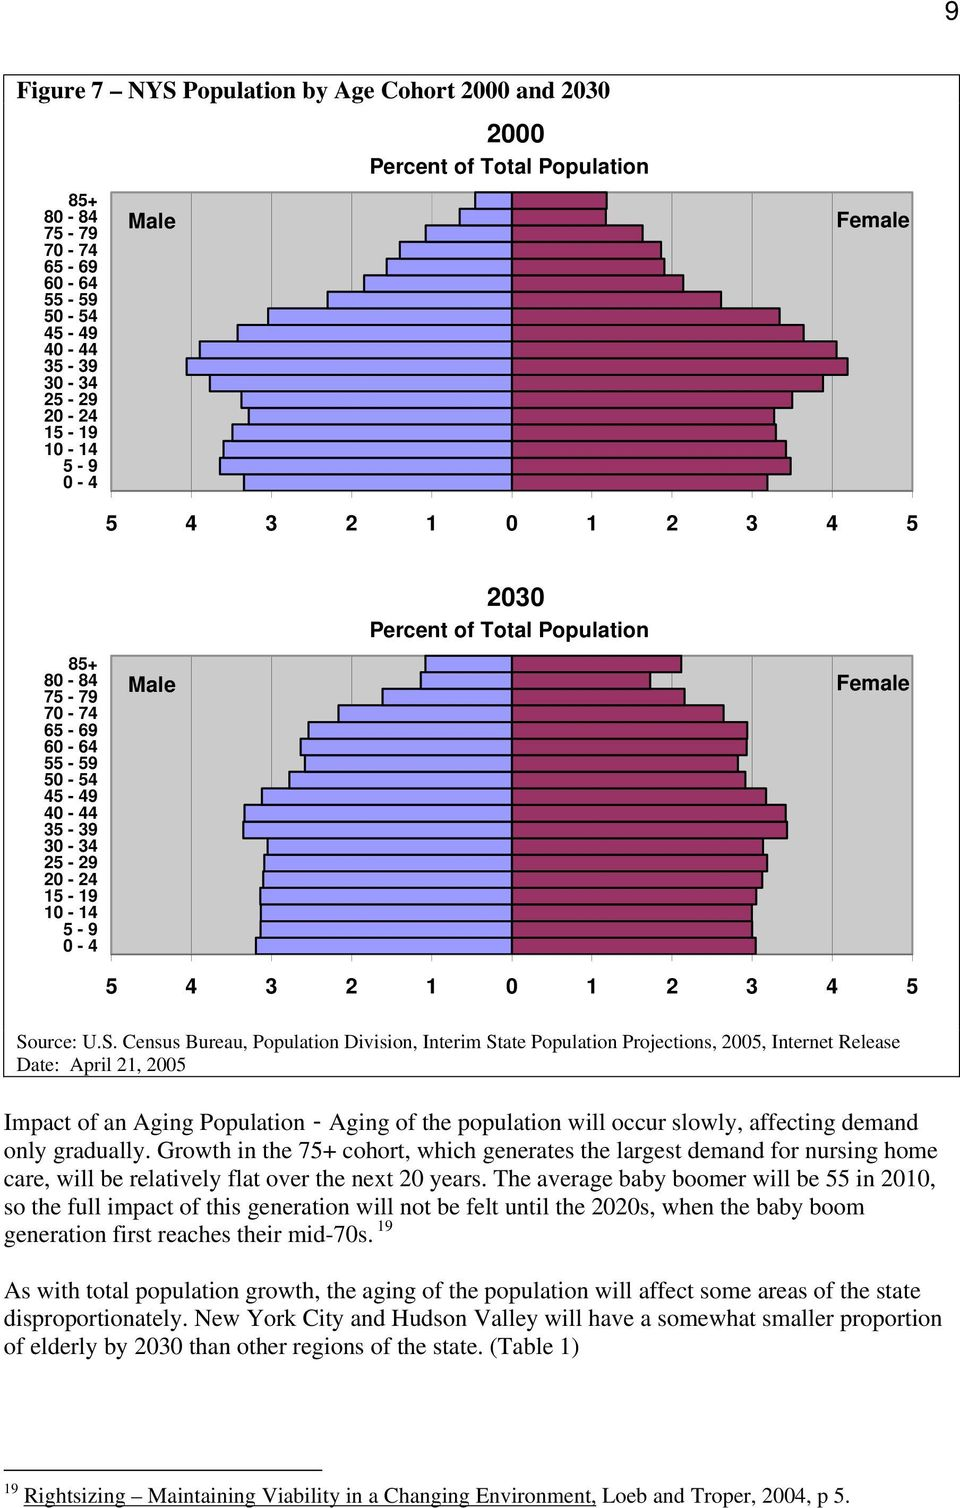 Source: U.S. Census Bureau, Population Division, Interim State Population Projections, 2005, Internet Release Date: April 21, 2005 Impact of an Aging Population - Aging of the population will occur